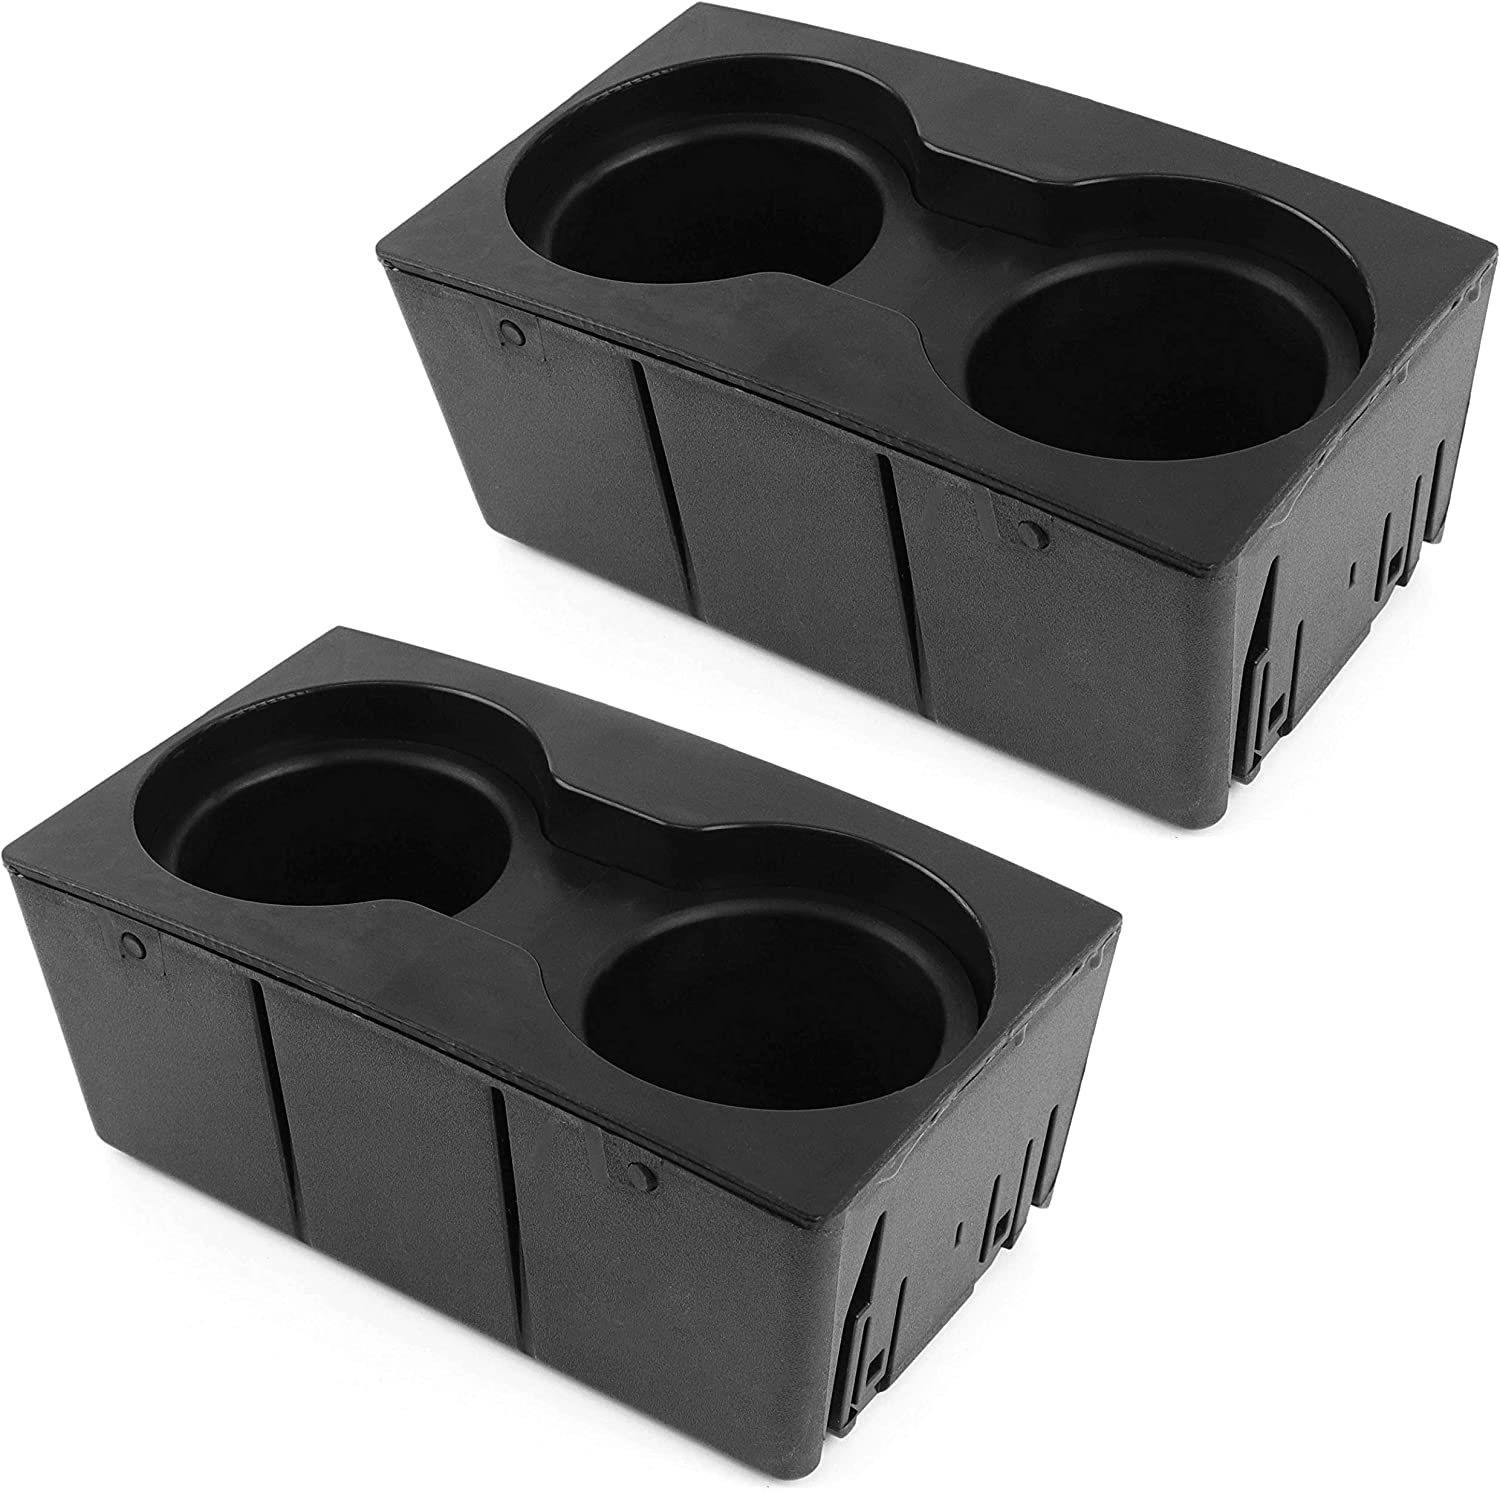 Red Hound Auto 2 Cup Holder Inserts Holds 4 Cups Compatible with Ford Super Duty F-250/F-350/F-450/F-550 2011-2016 fits Front Center Floor Mounted Console (Flow Through Style) Black Beverage Holder